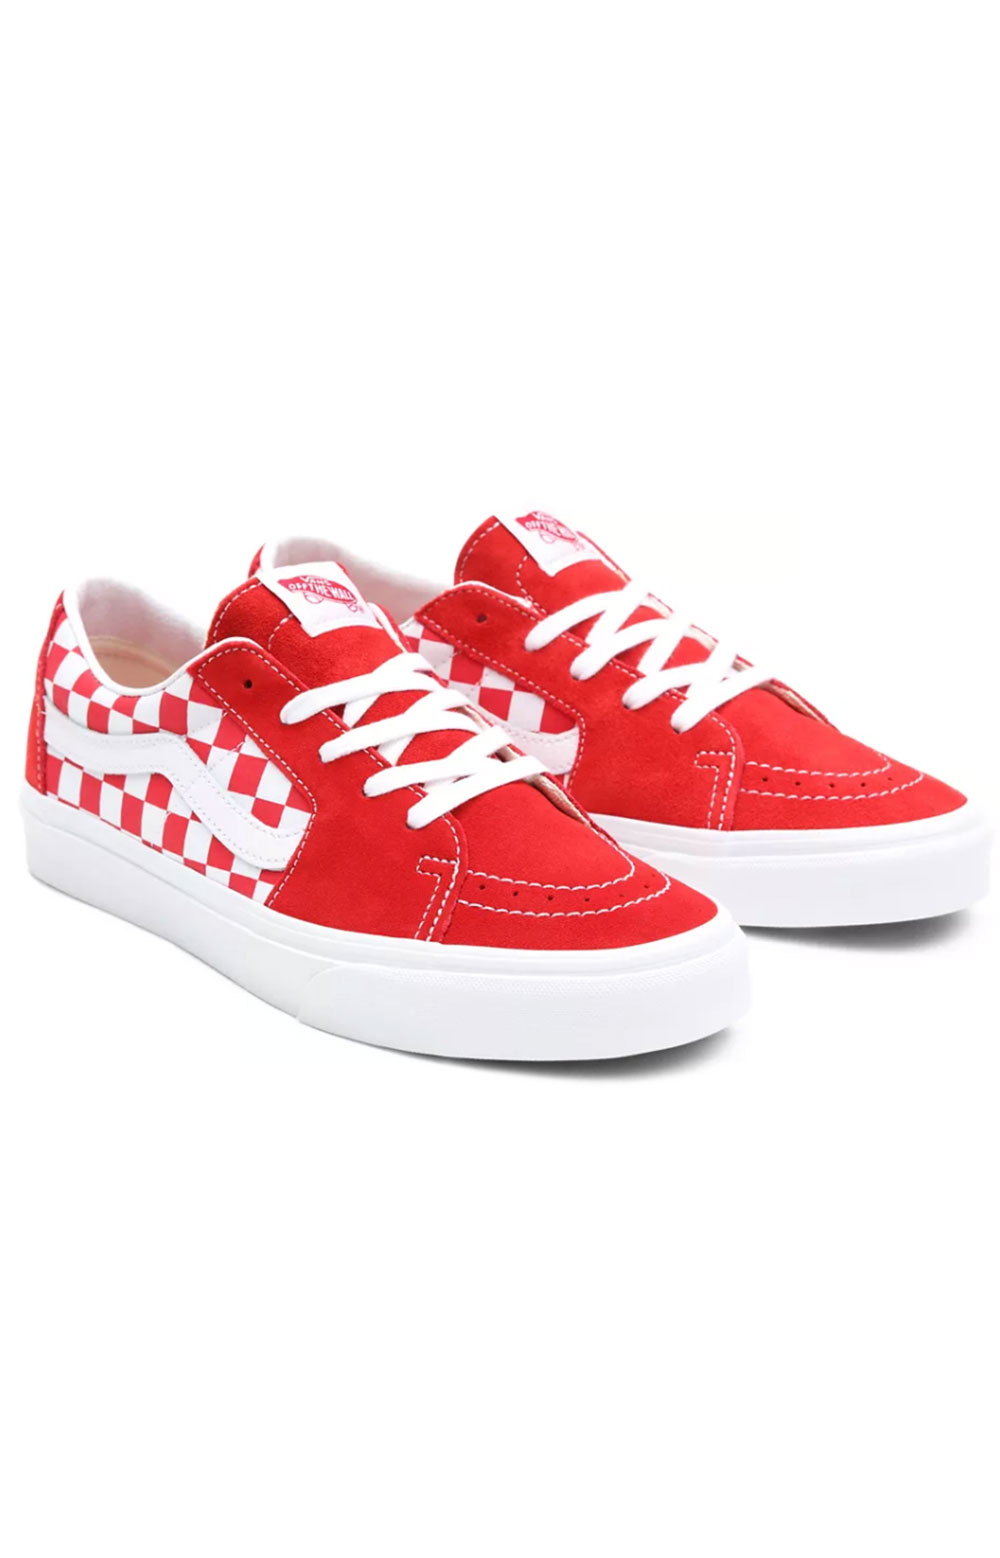 (UUK4W9) Canvas Suede Sk8-Low Shoes - Racing Red/Checkerboard 2